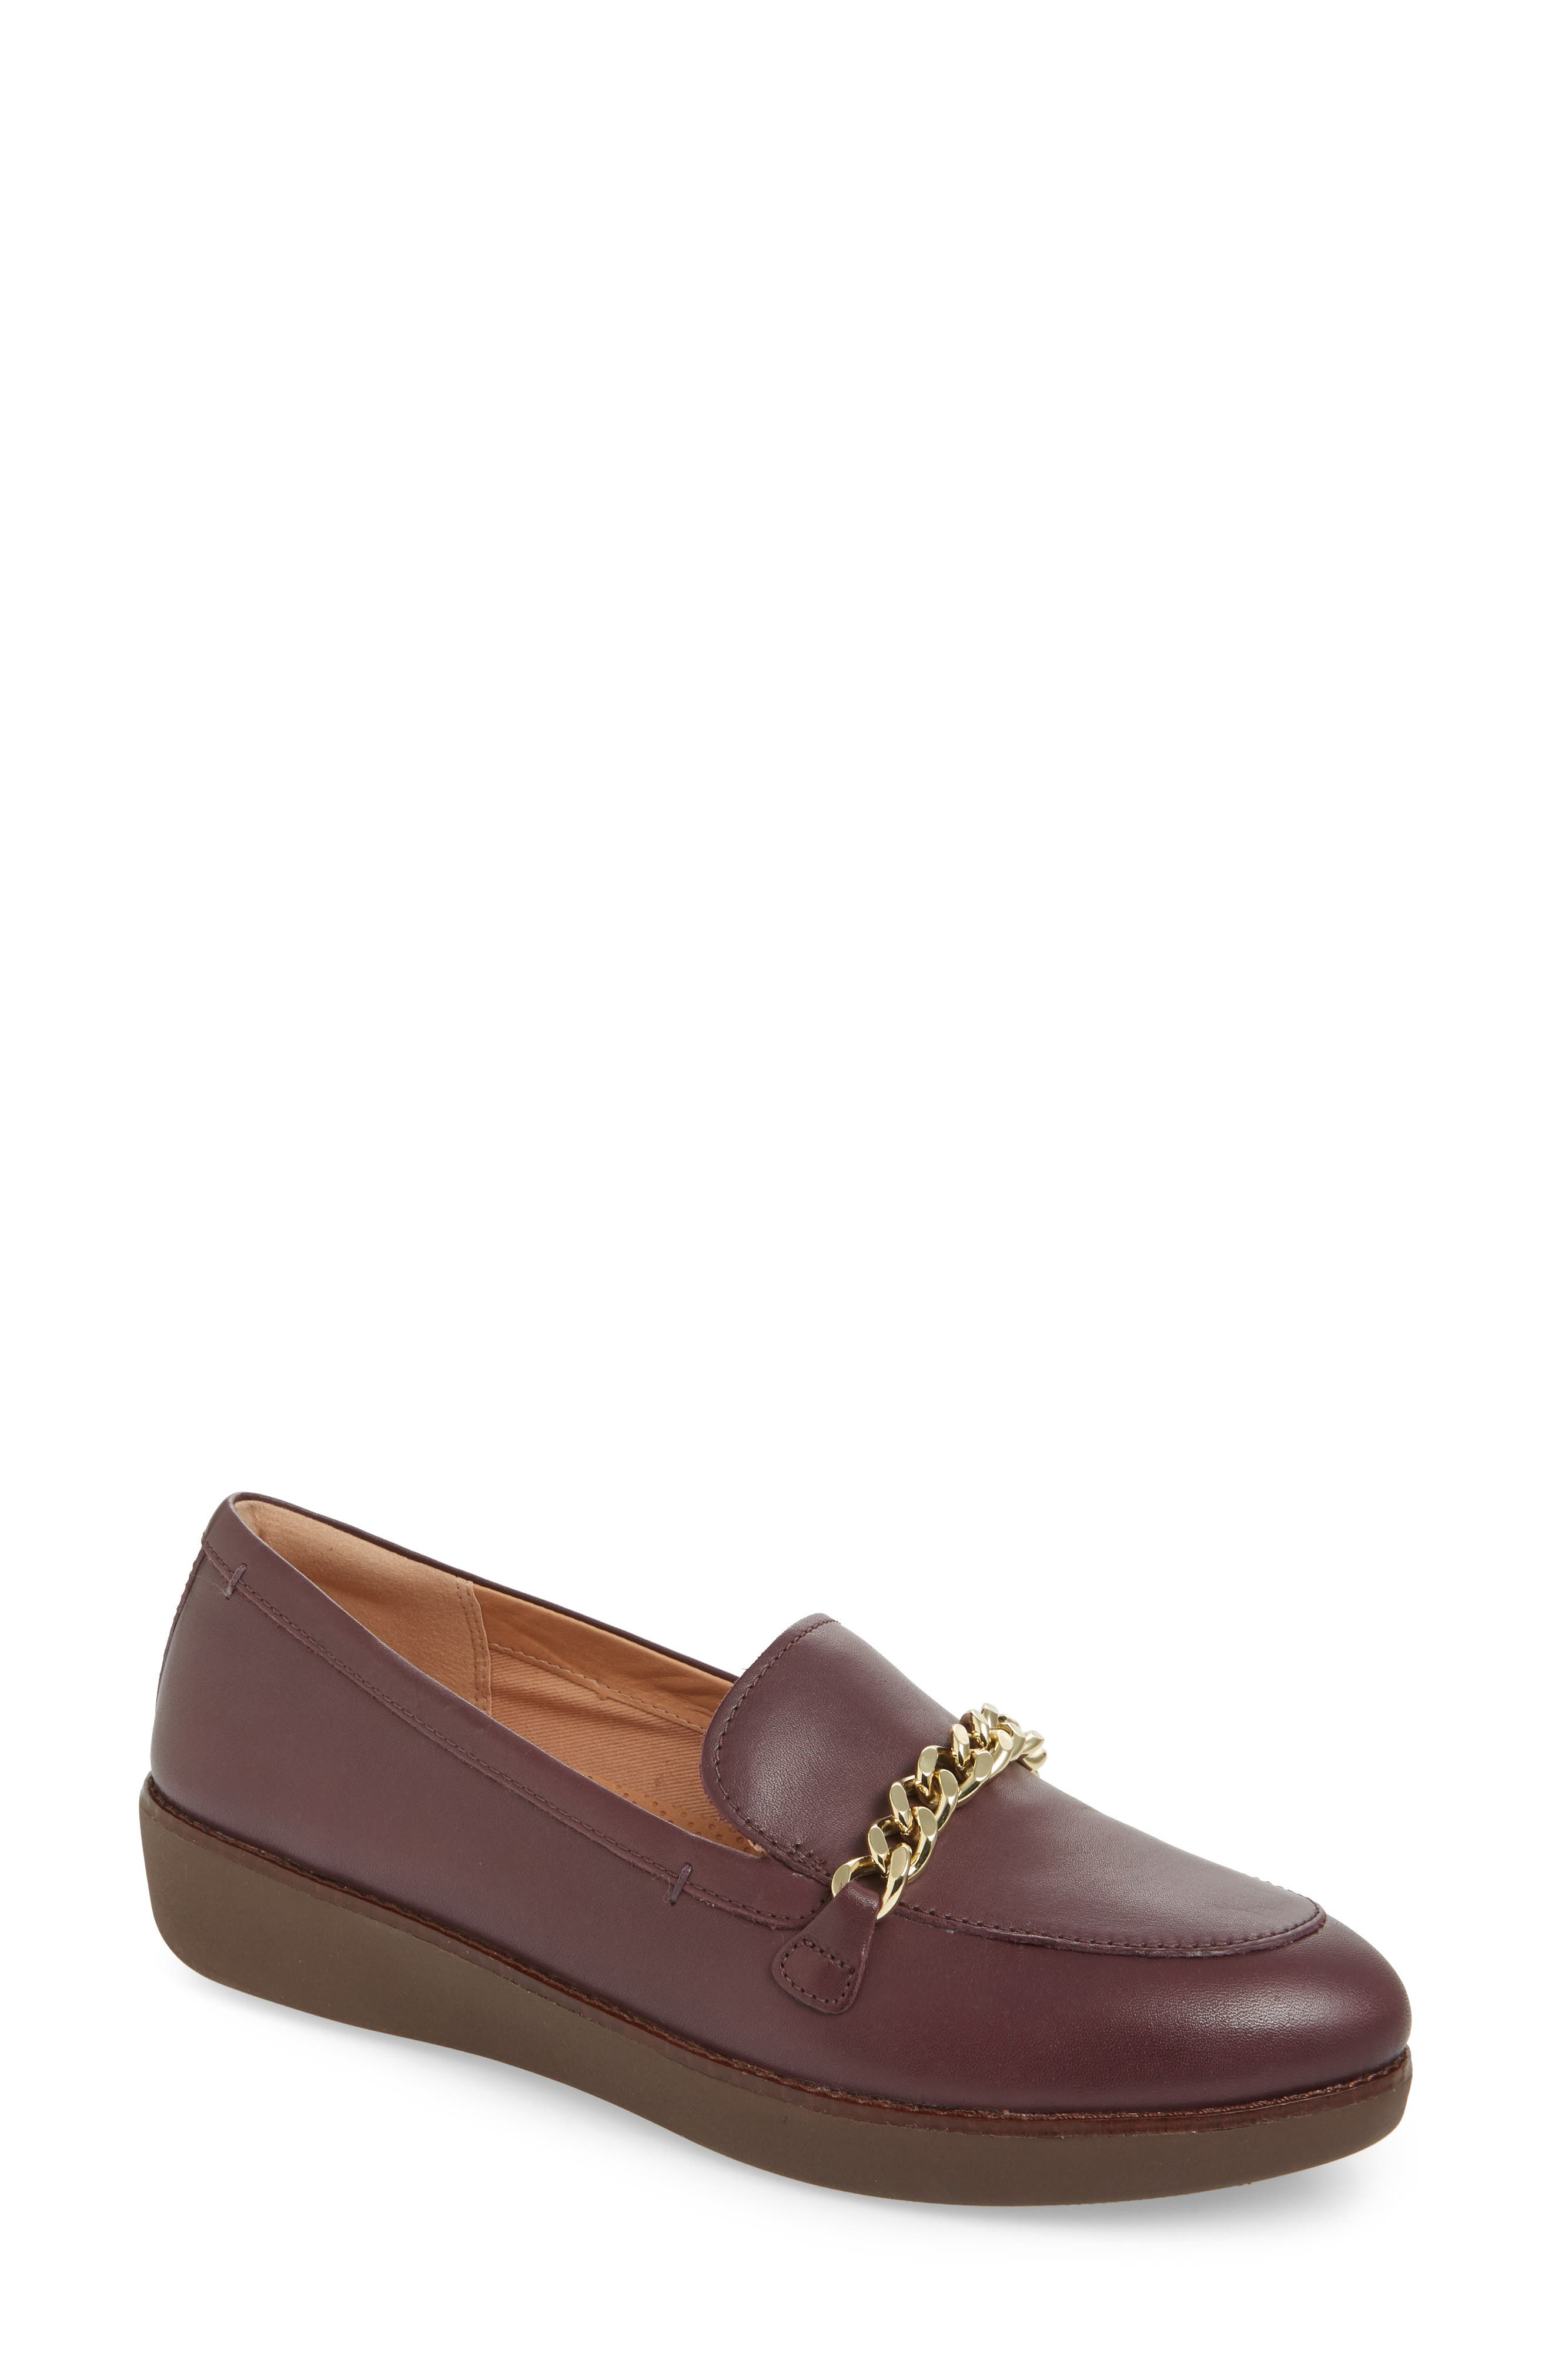 FITFLOP,                             Petrina Chain Loafer,                             Main thumbnail 1, color,                             547